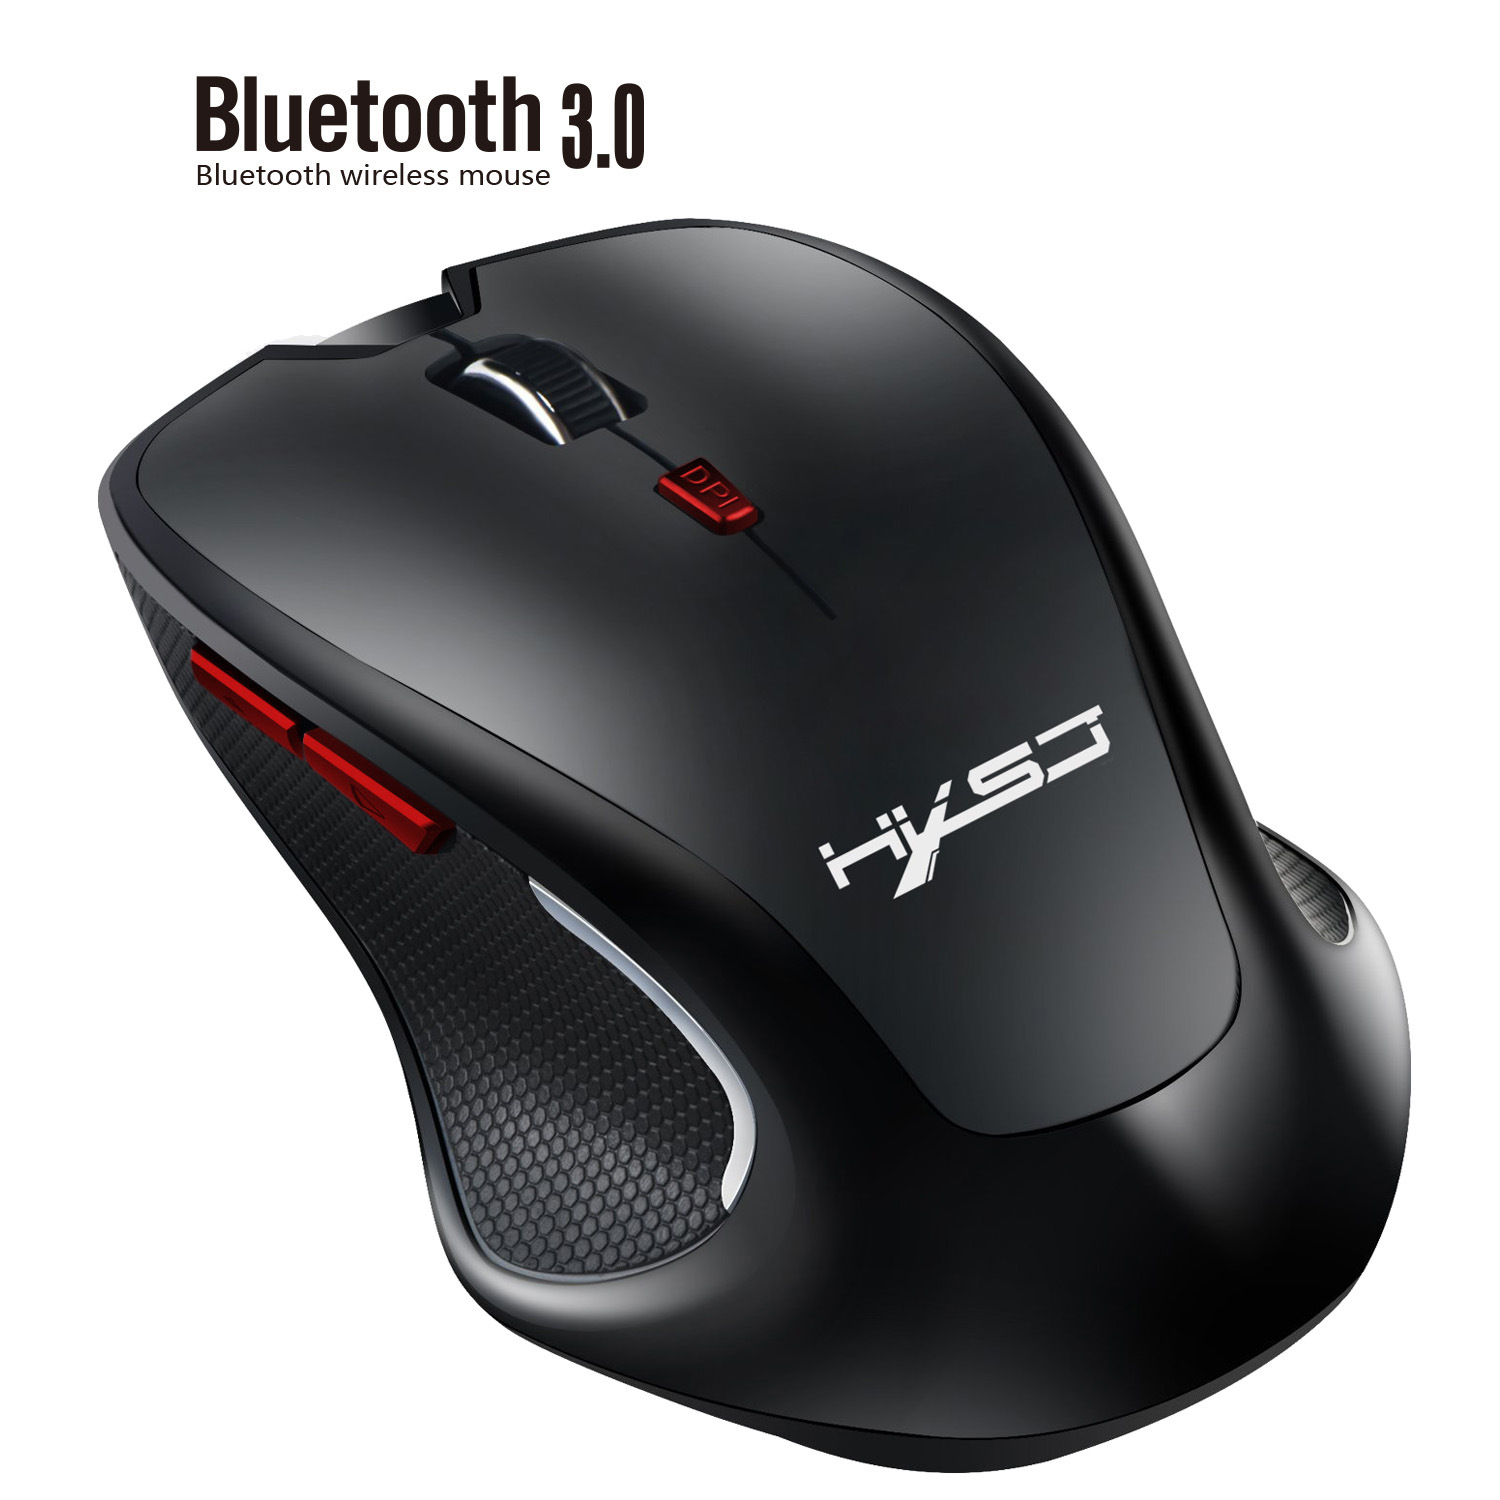 Bluetooth 3.0 Wireless Mouse 2400dpi Gaming Mouse Office Mouse For Computers Laptops Ergonomic Mouse Wireless Gaming Mouse